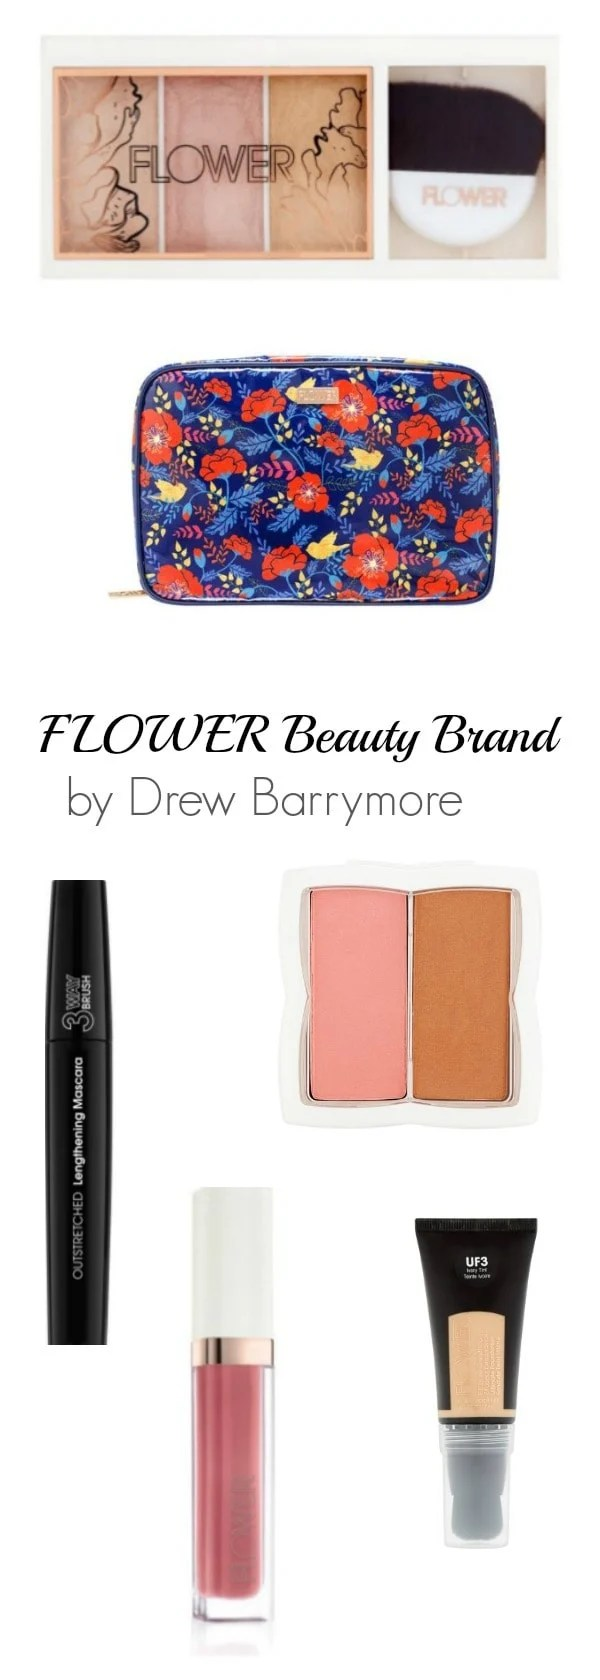 Where to Buy FLOWER Beauty Products from Drew Barrymore. View these popular cosmetics and beauty products that are getting rave reviews. #beauty #makeup AD